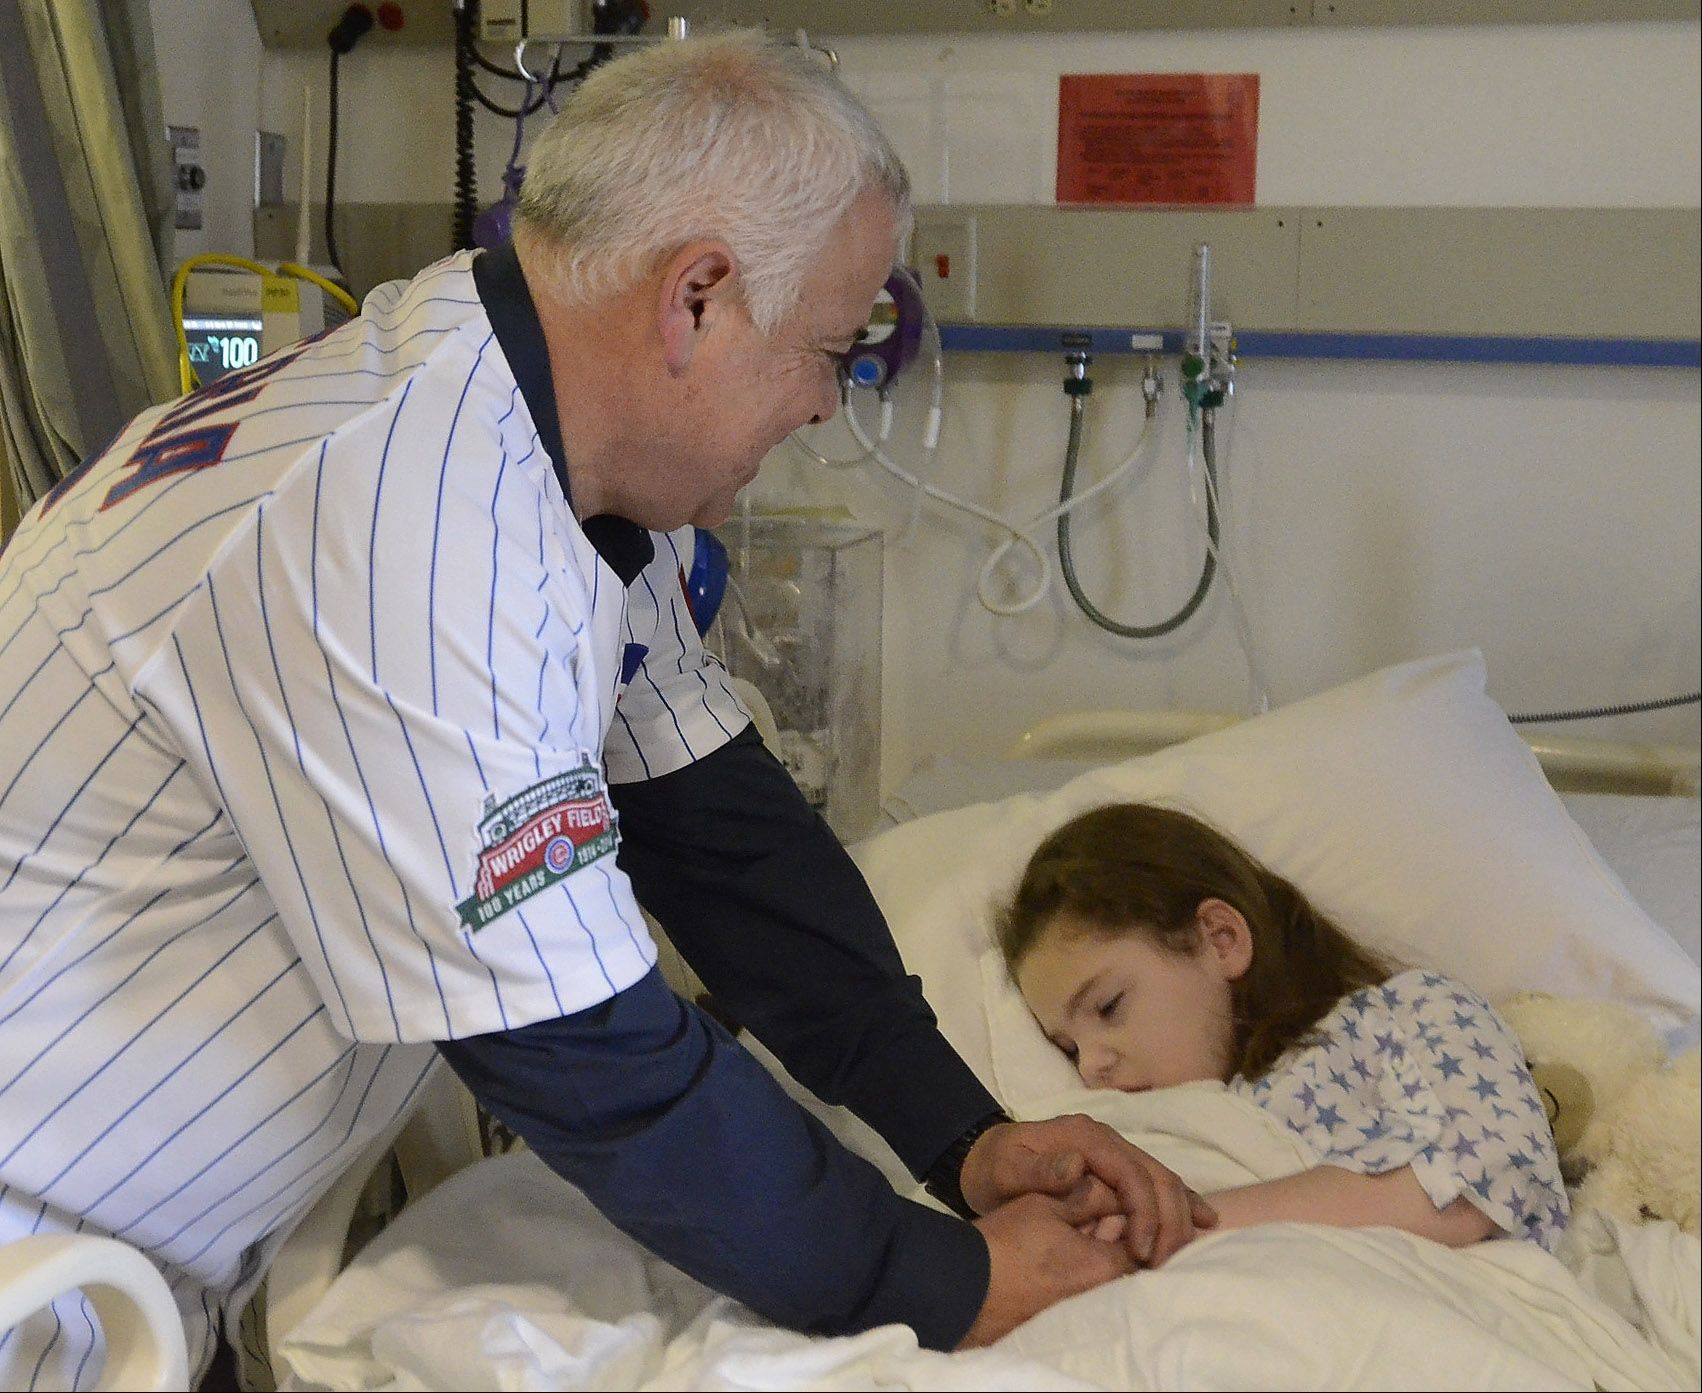 New Cubs manager Rick Renteria spends a quiet moment with Addison Kurtz of Glenview.